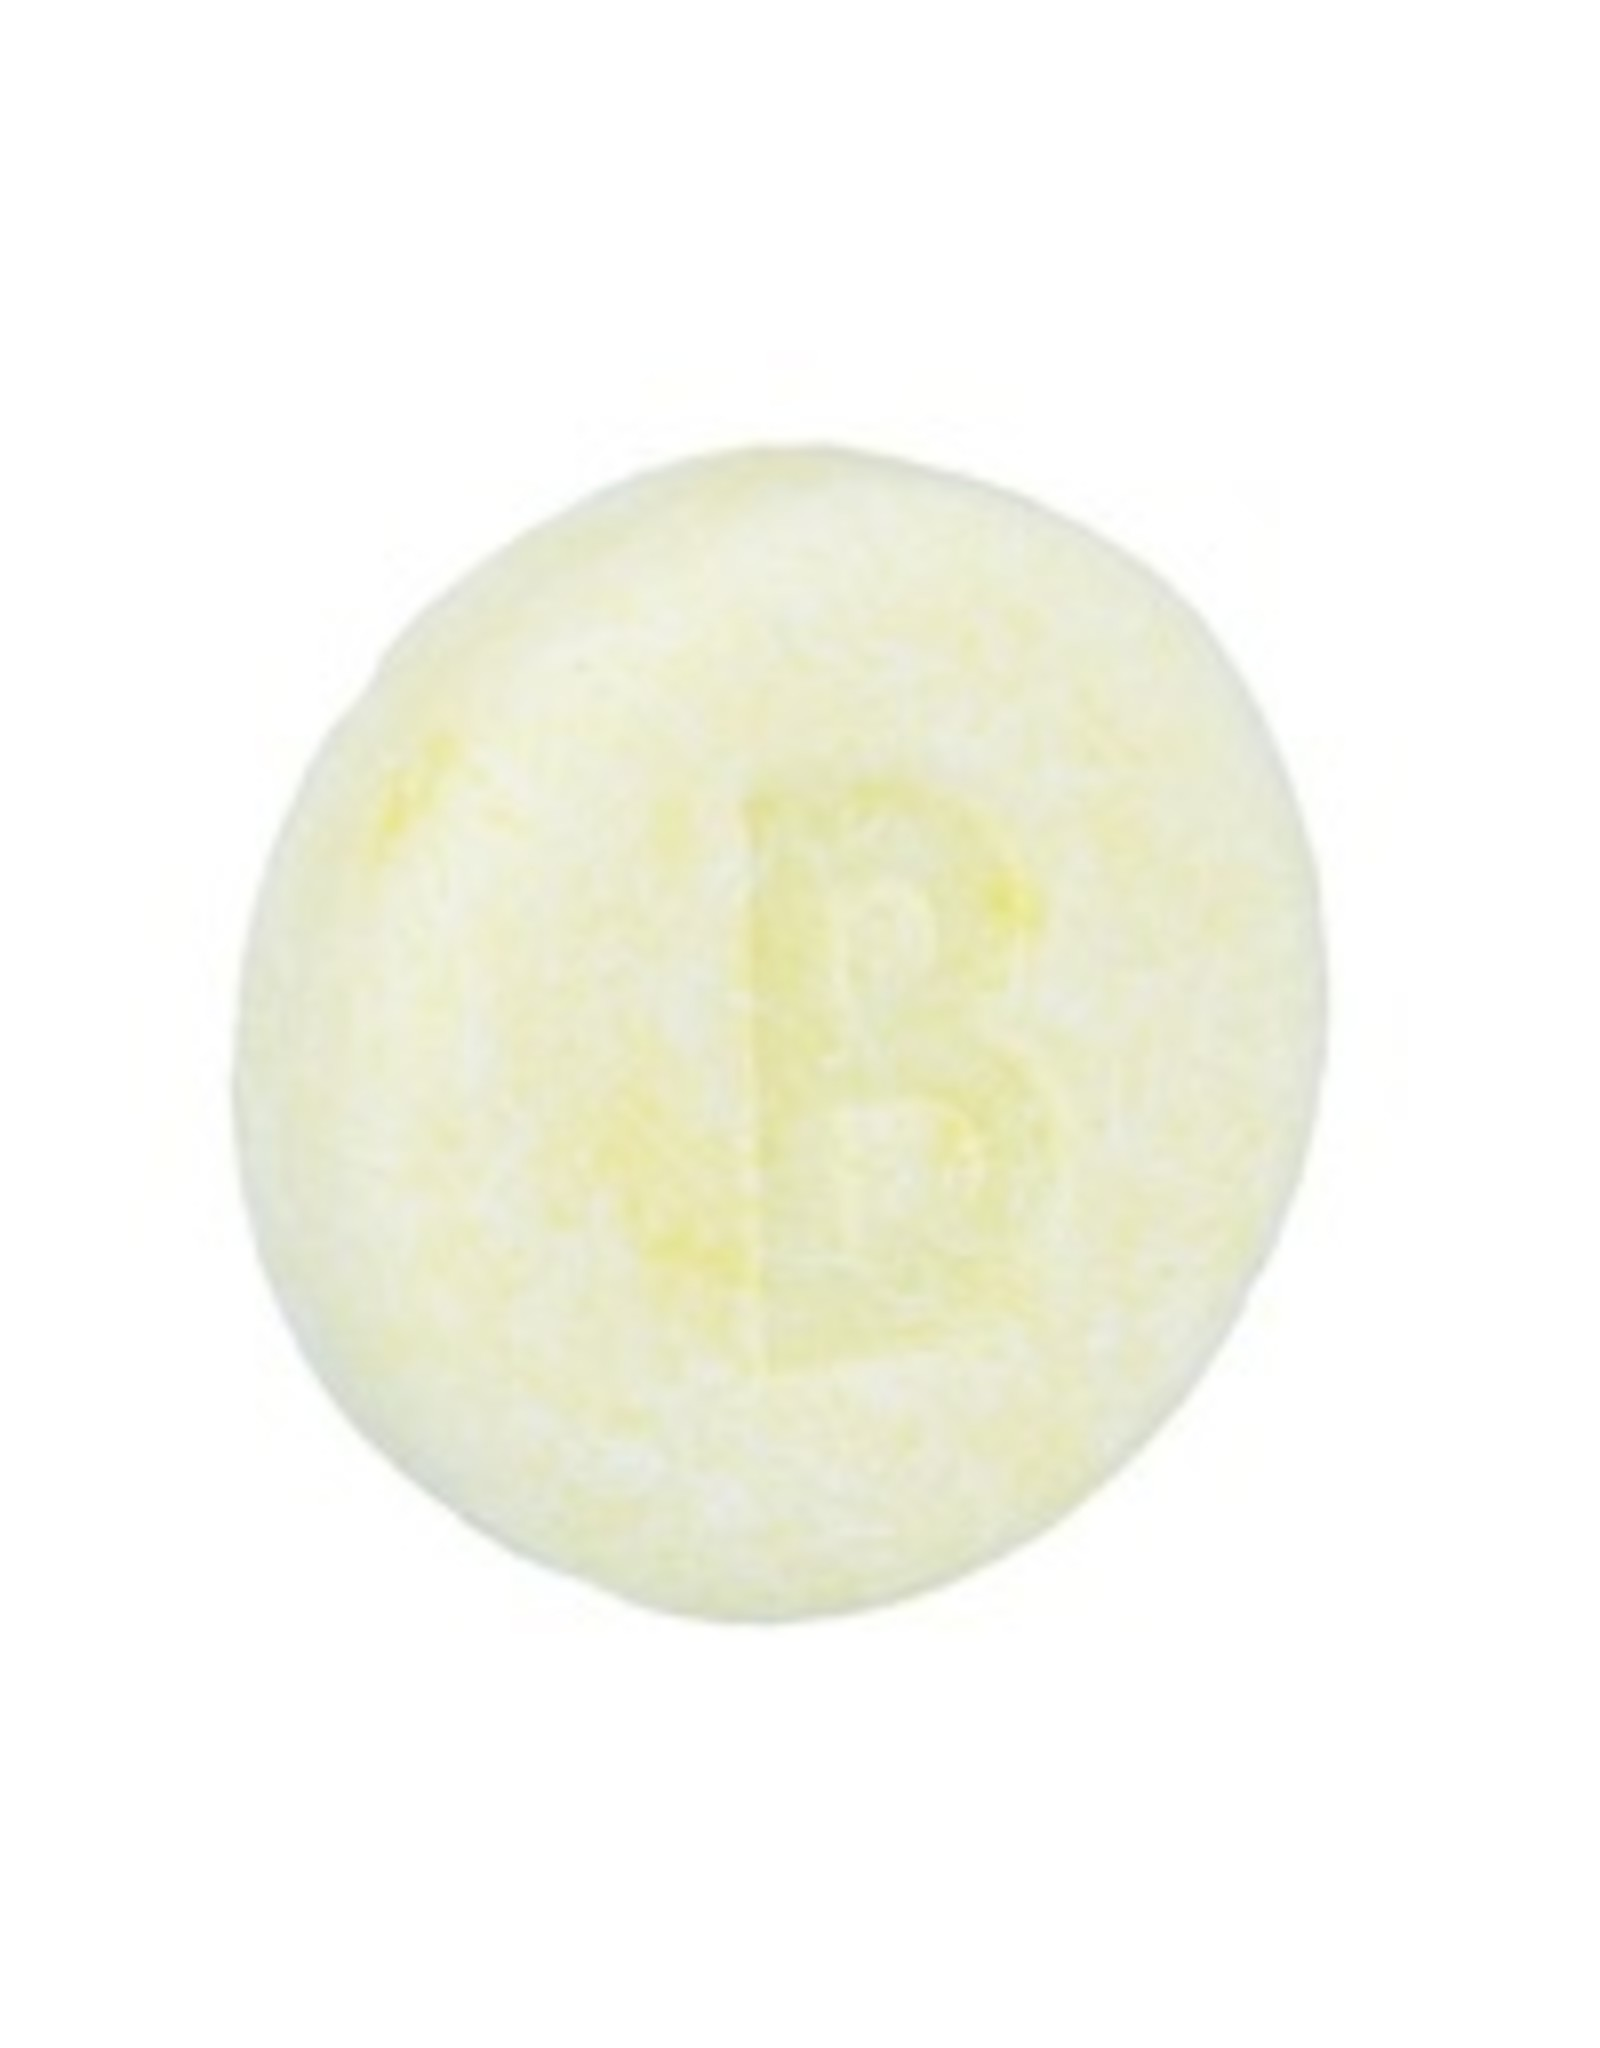 Shampoo Bar 'Back To My Roots' - Body & Soap